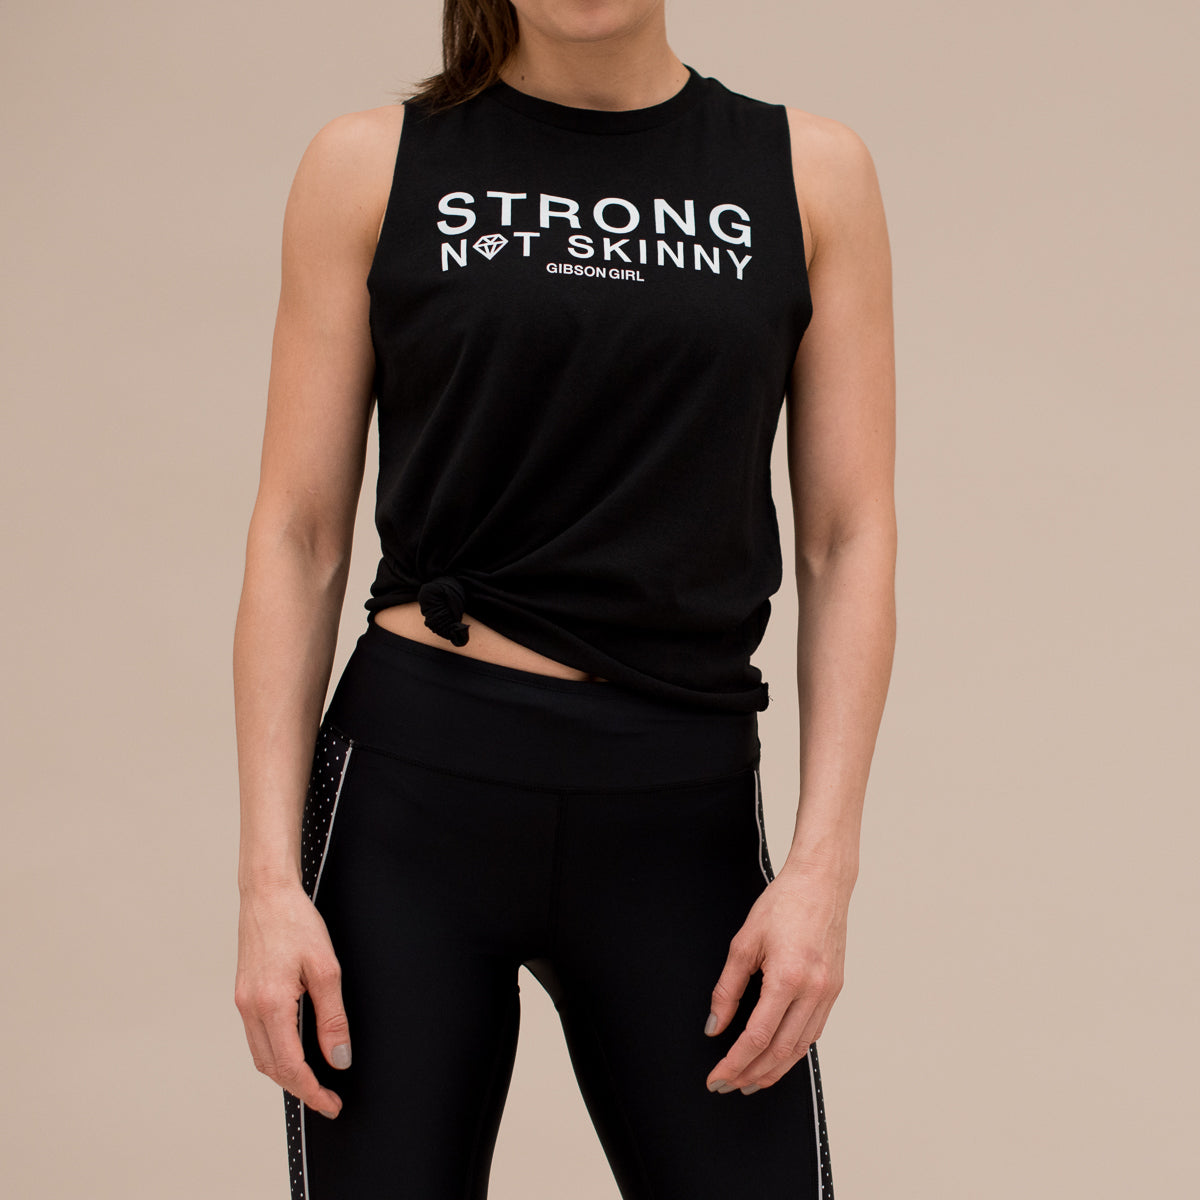 410cb5ecebd42 Slogan Women s Workout Top - Strong Not Skinny Tank - Black   White ...